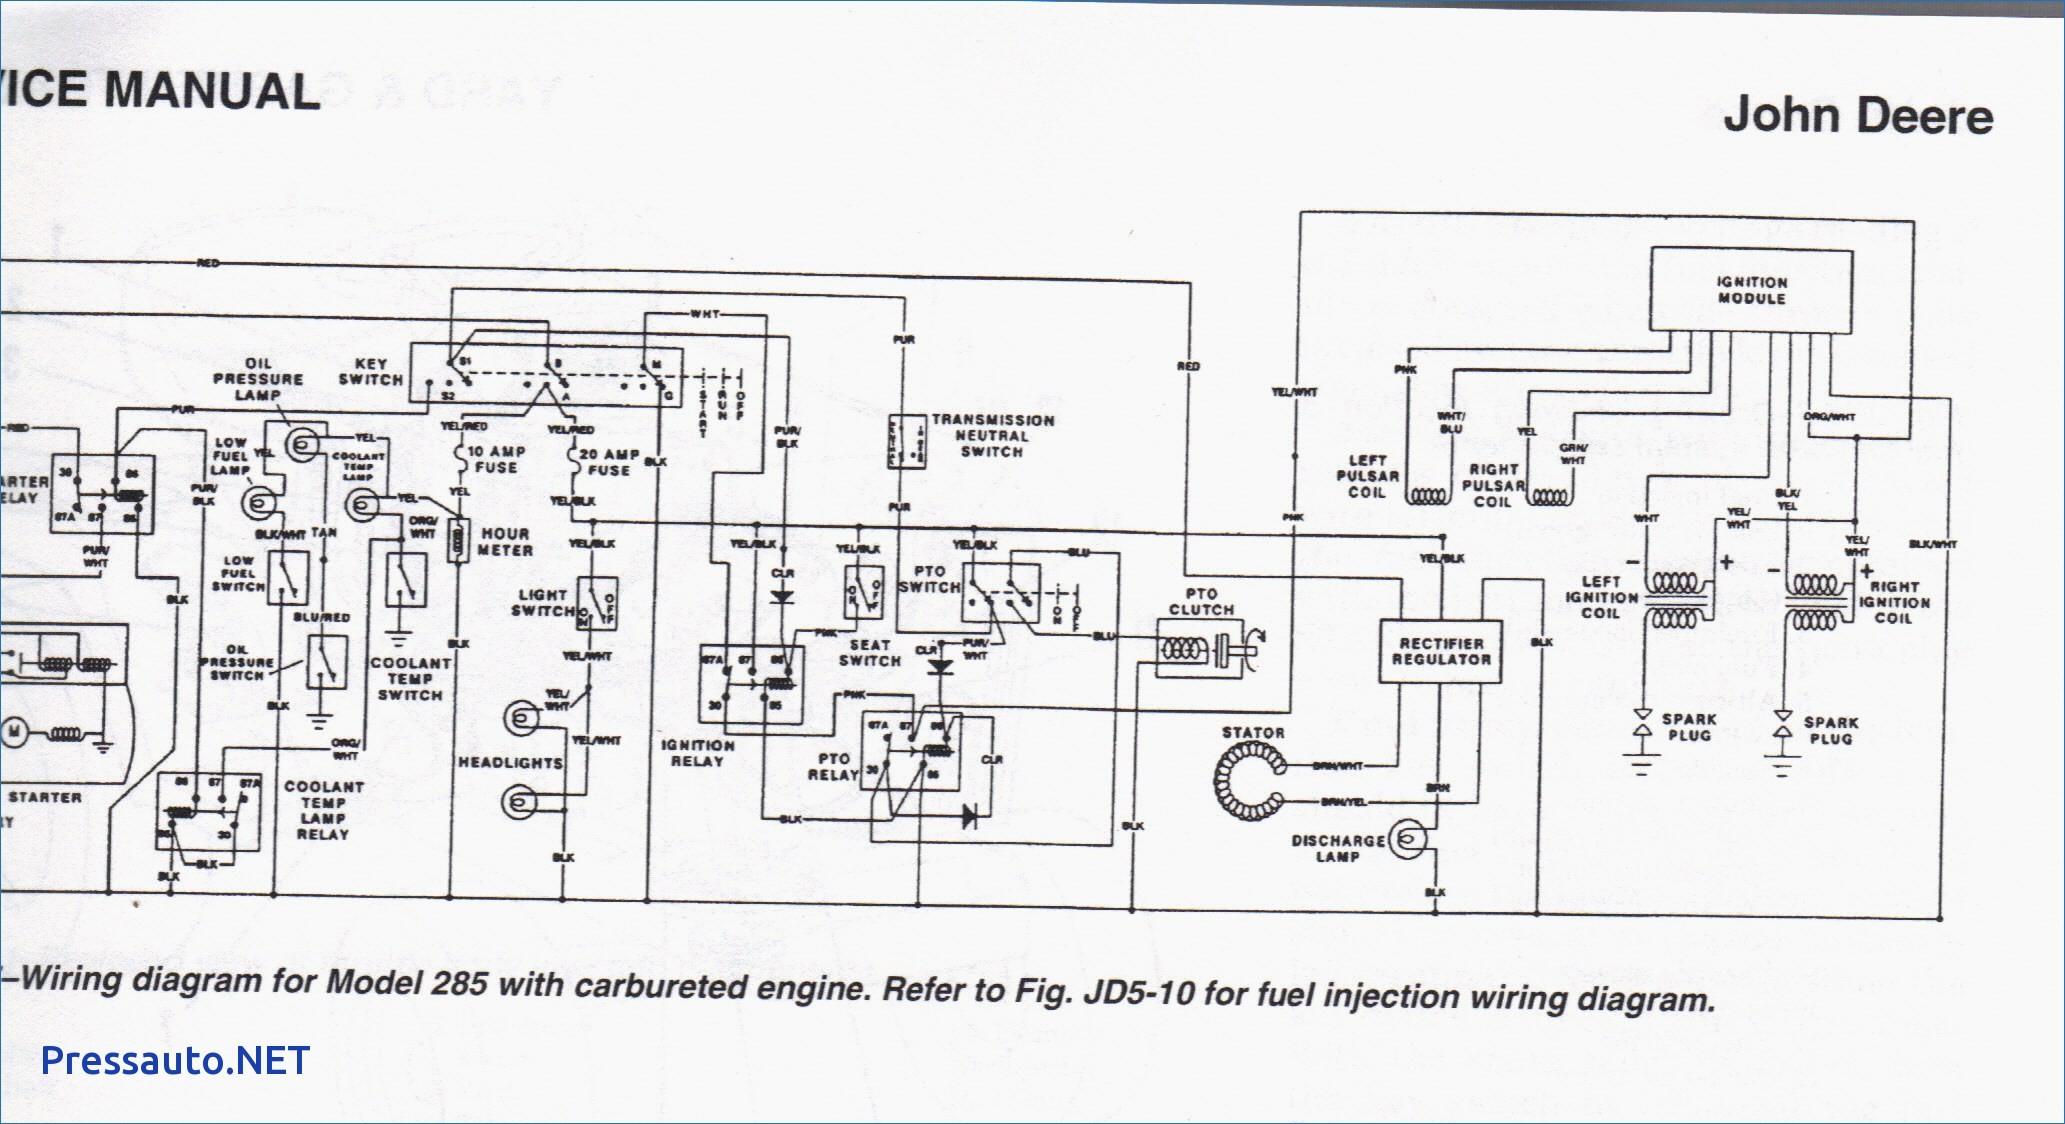 2 Chime Wiring Diagram